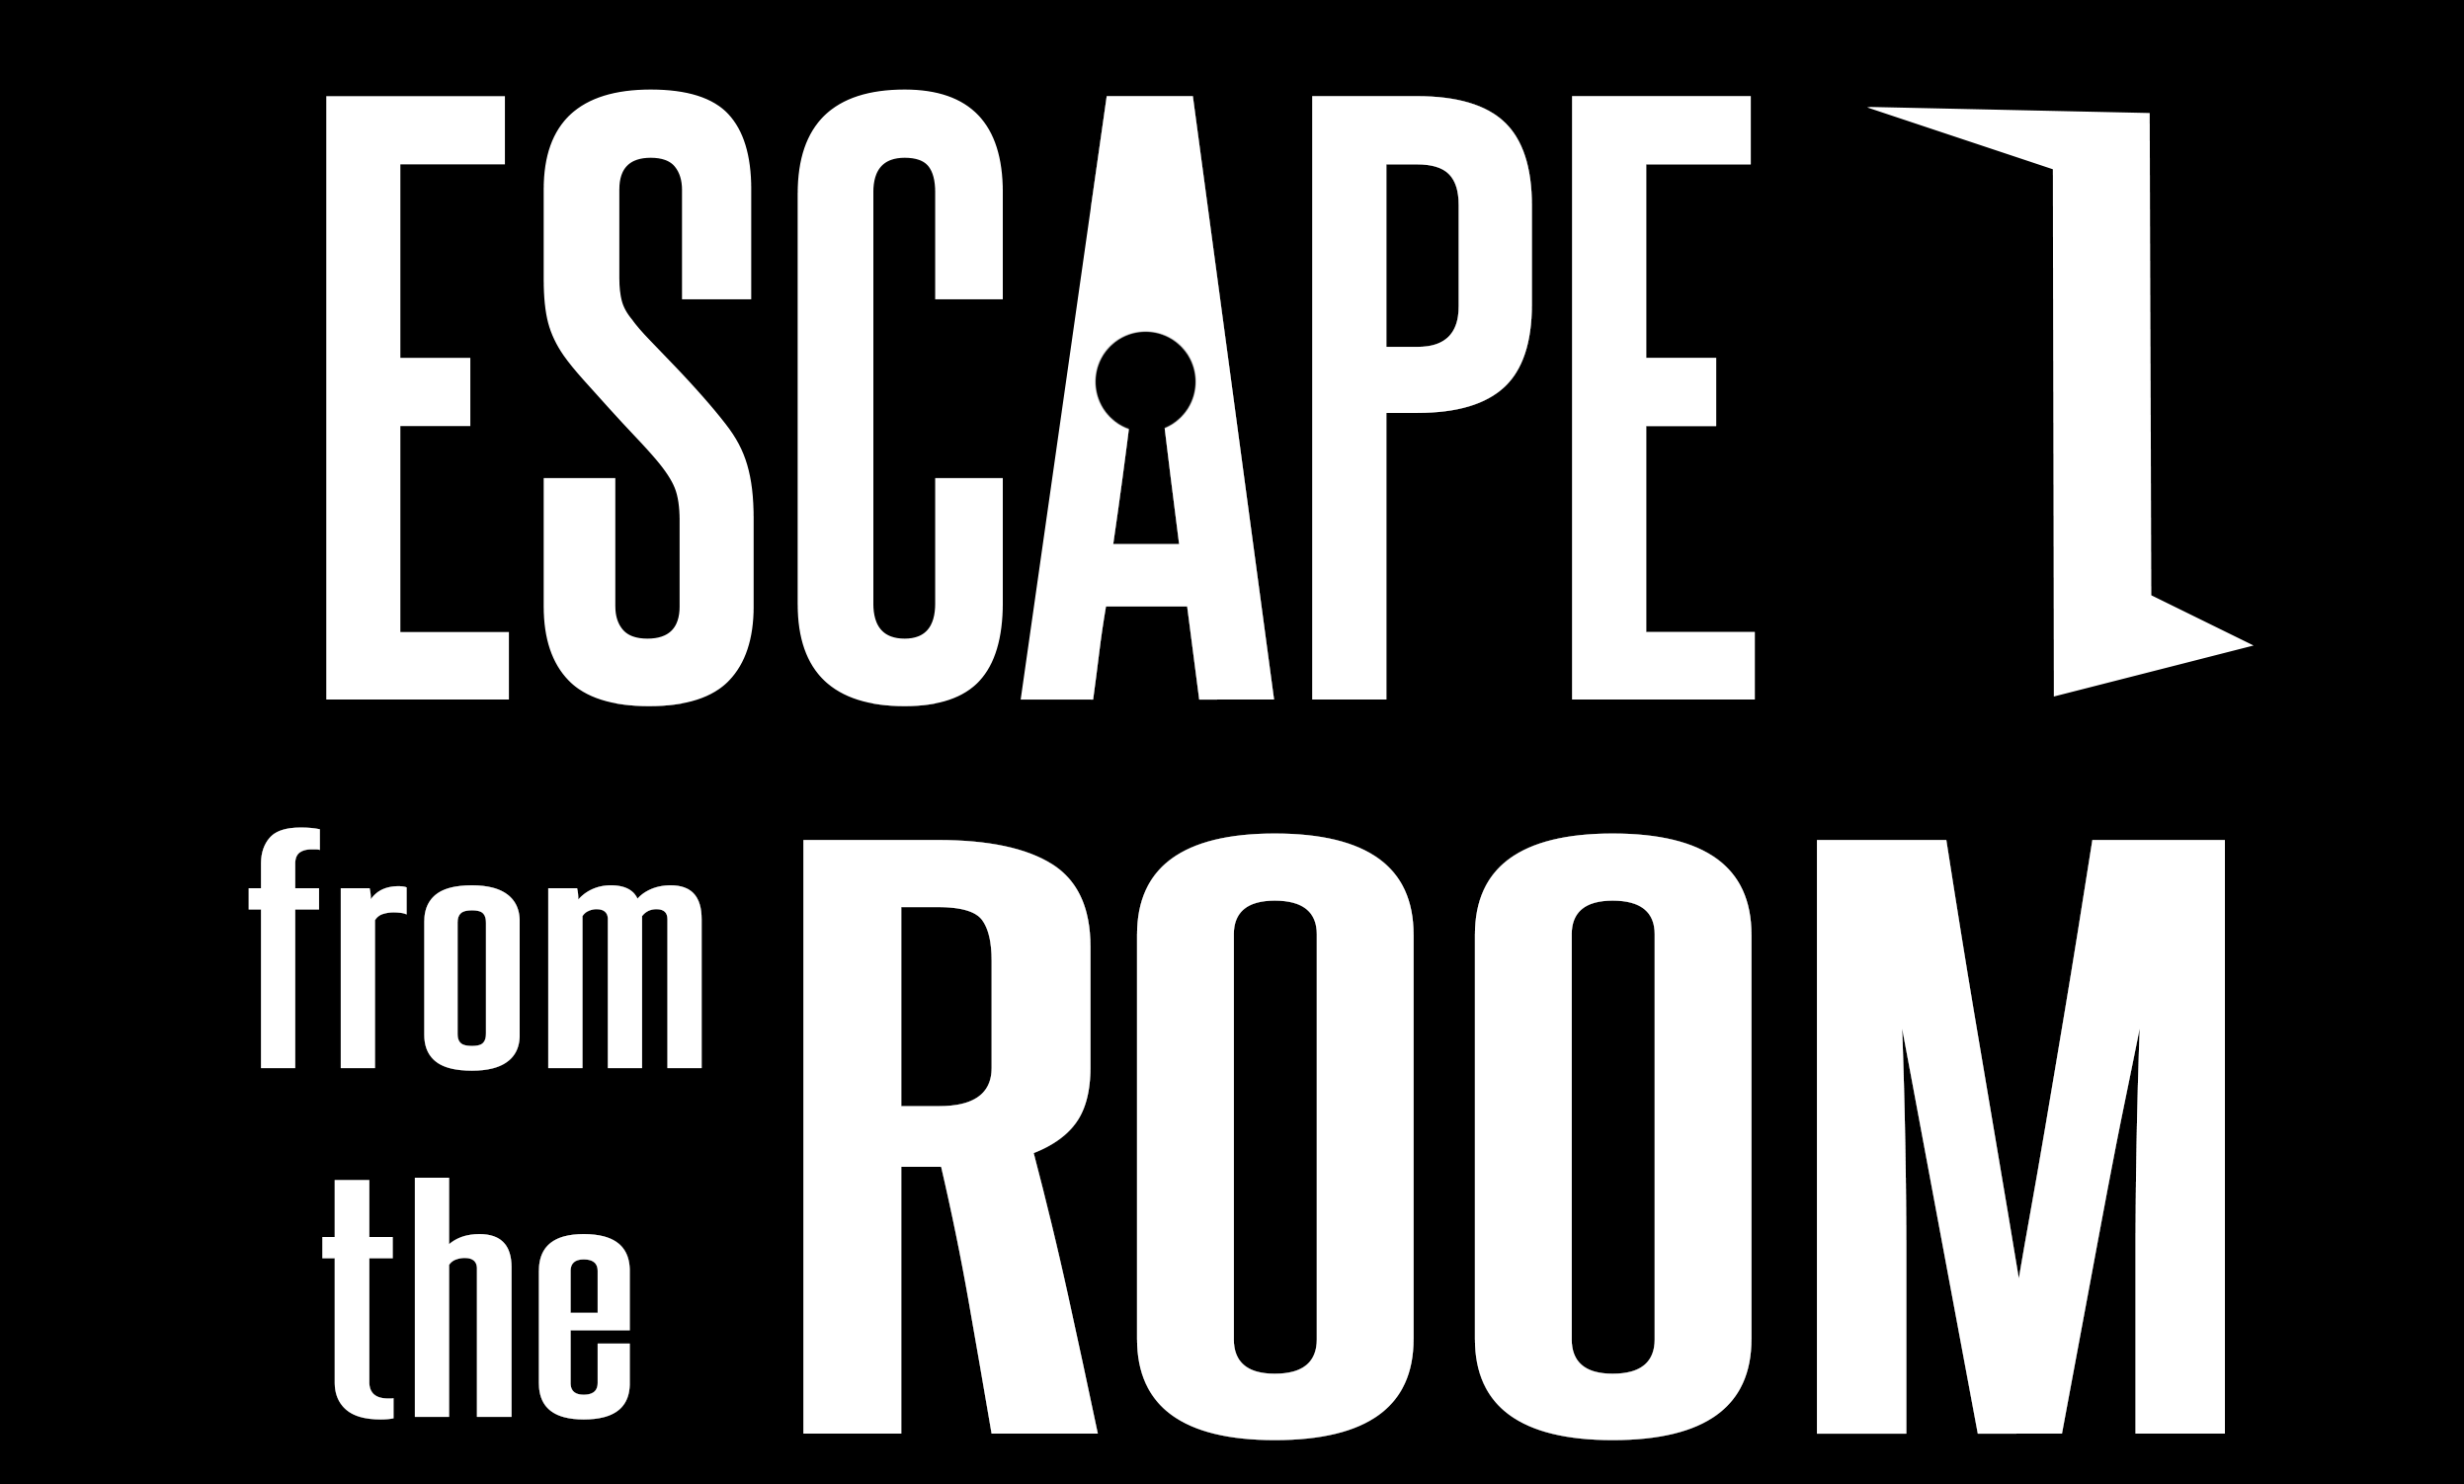 Generic Escape From The Room logo